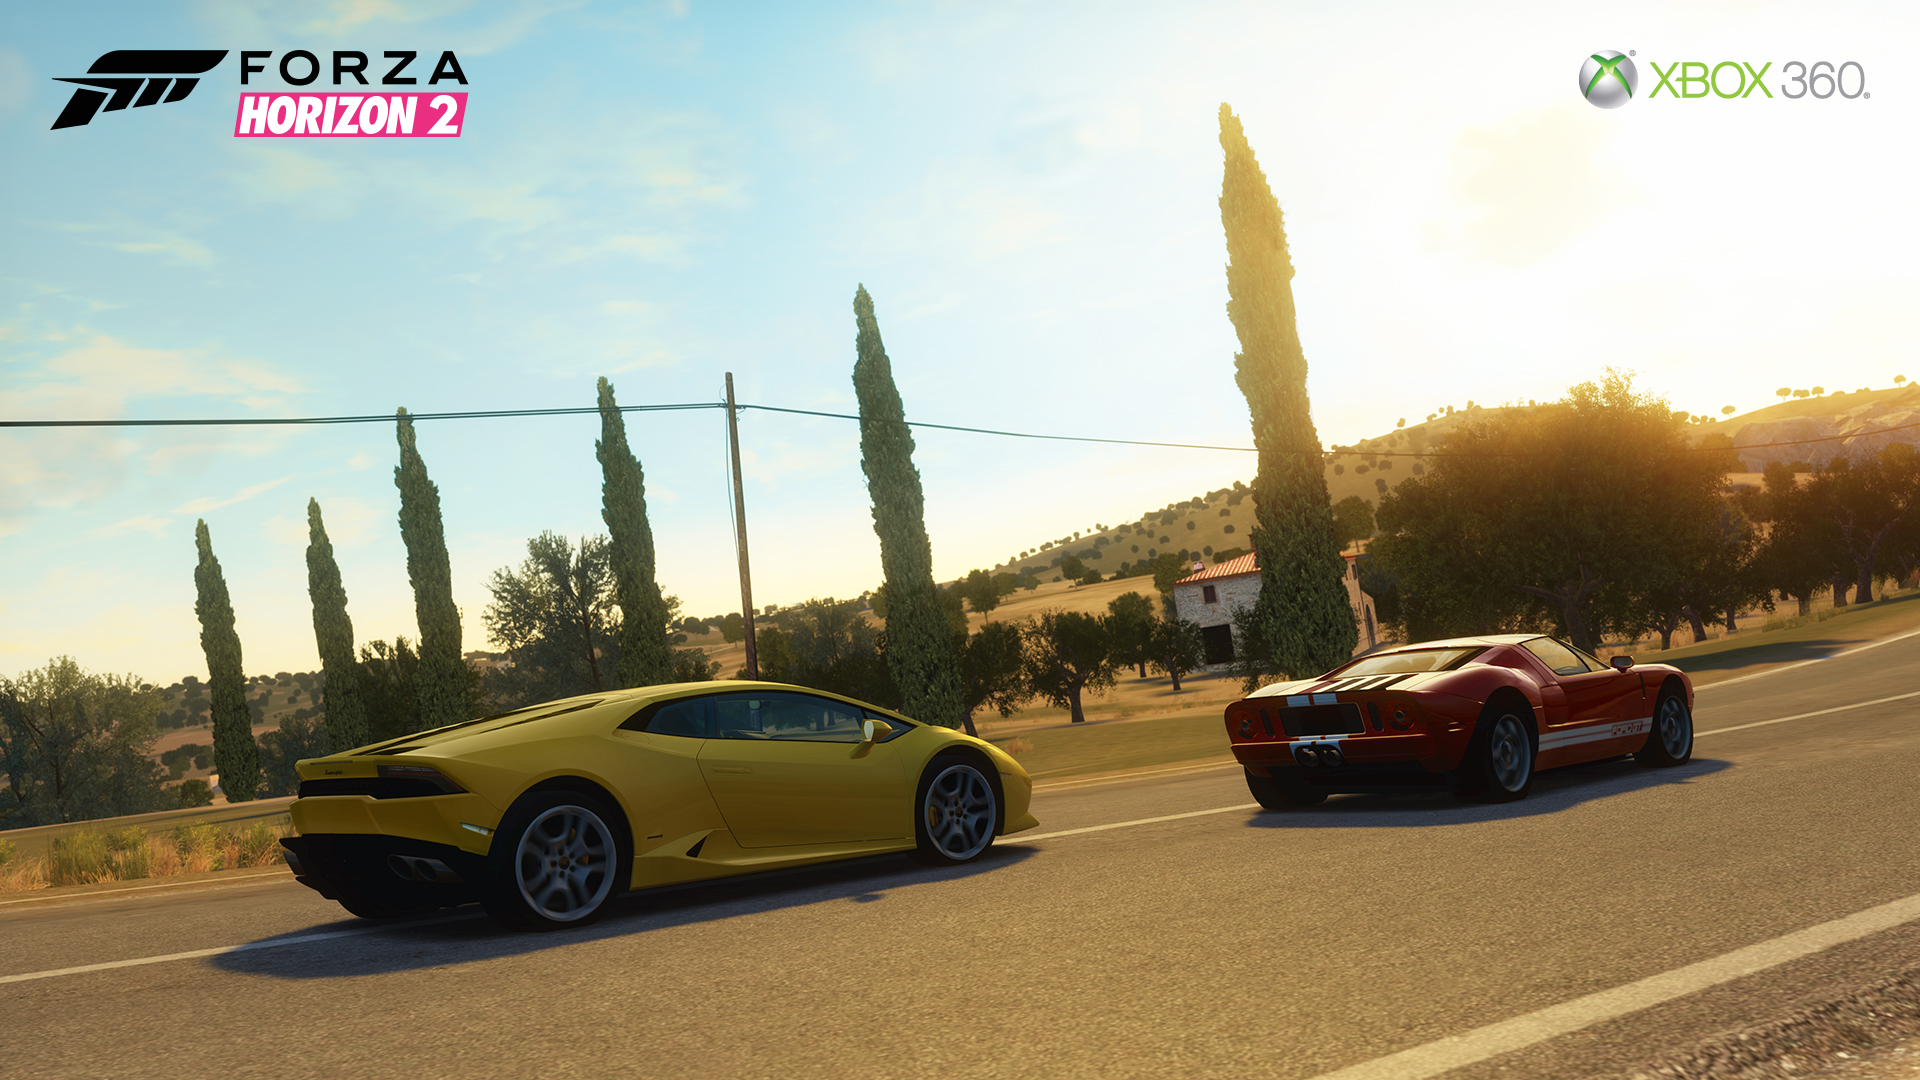 Forza Horizon 2 On Xbox 360